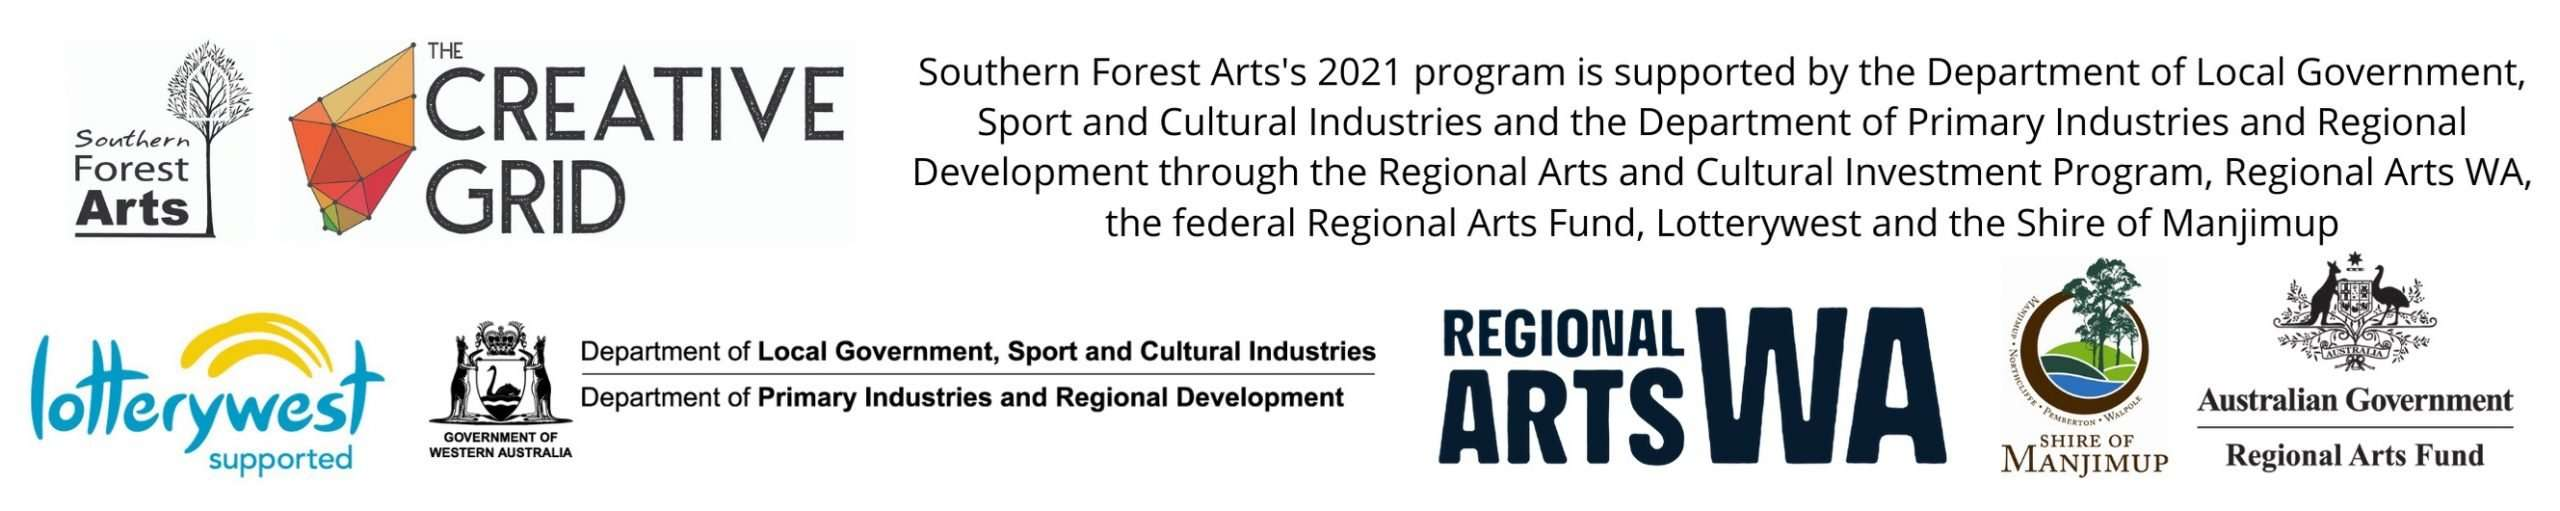 Southern Forest Arts program partners in 2021